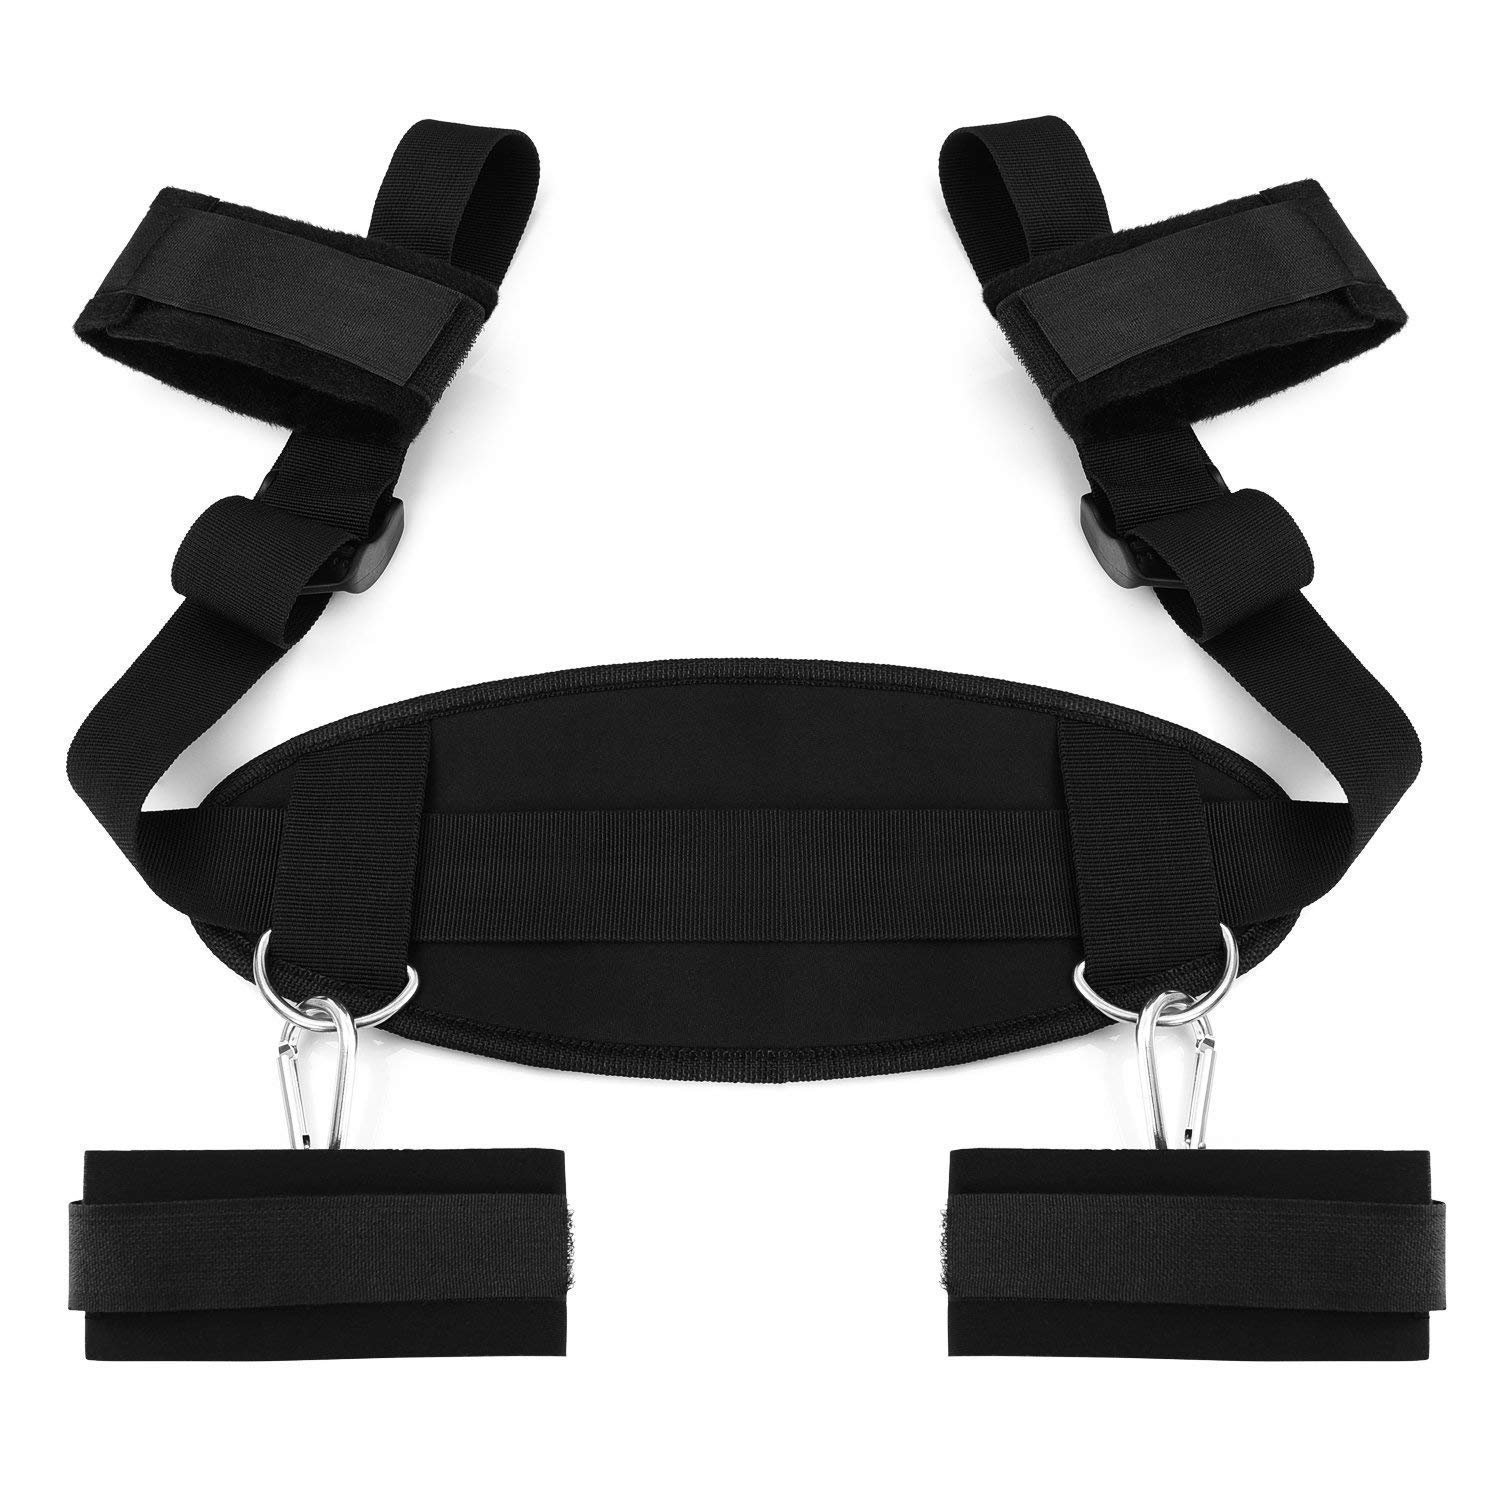 Freefeet Bed Restraints System with Adjustable Cuffs for Wrist & Ankle Black Bondage Straps for Female Male Couples